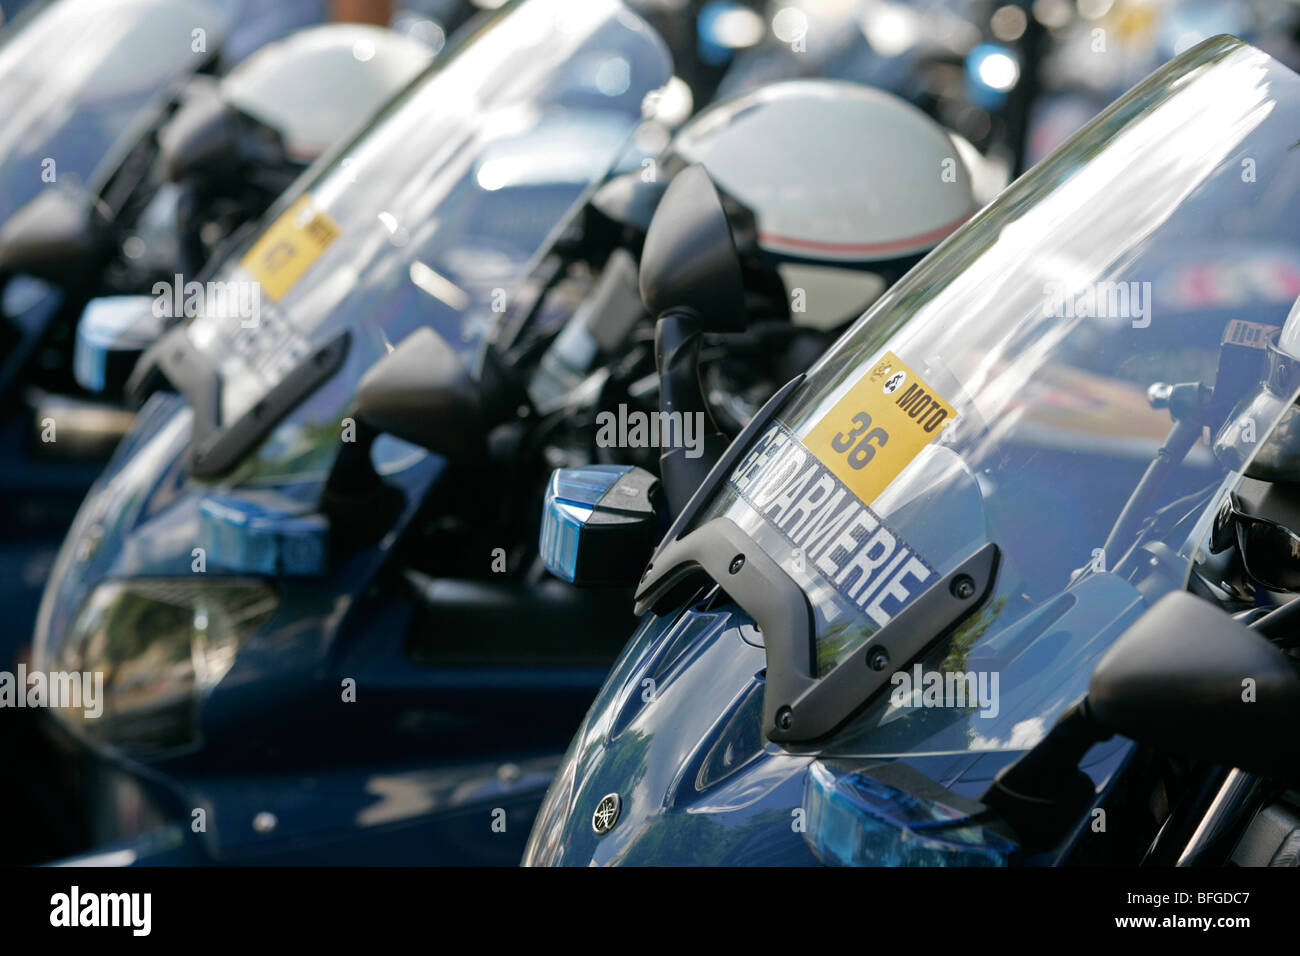 French motorcycle Gendarmerie Police motorbikes - Stock Image